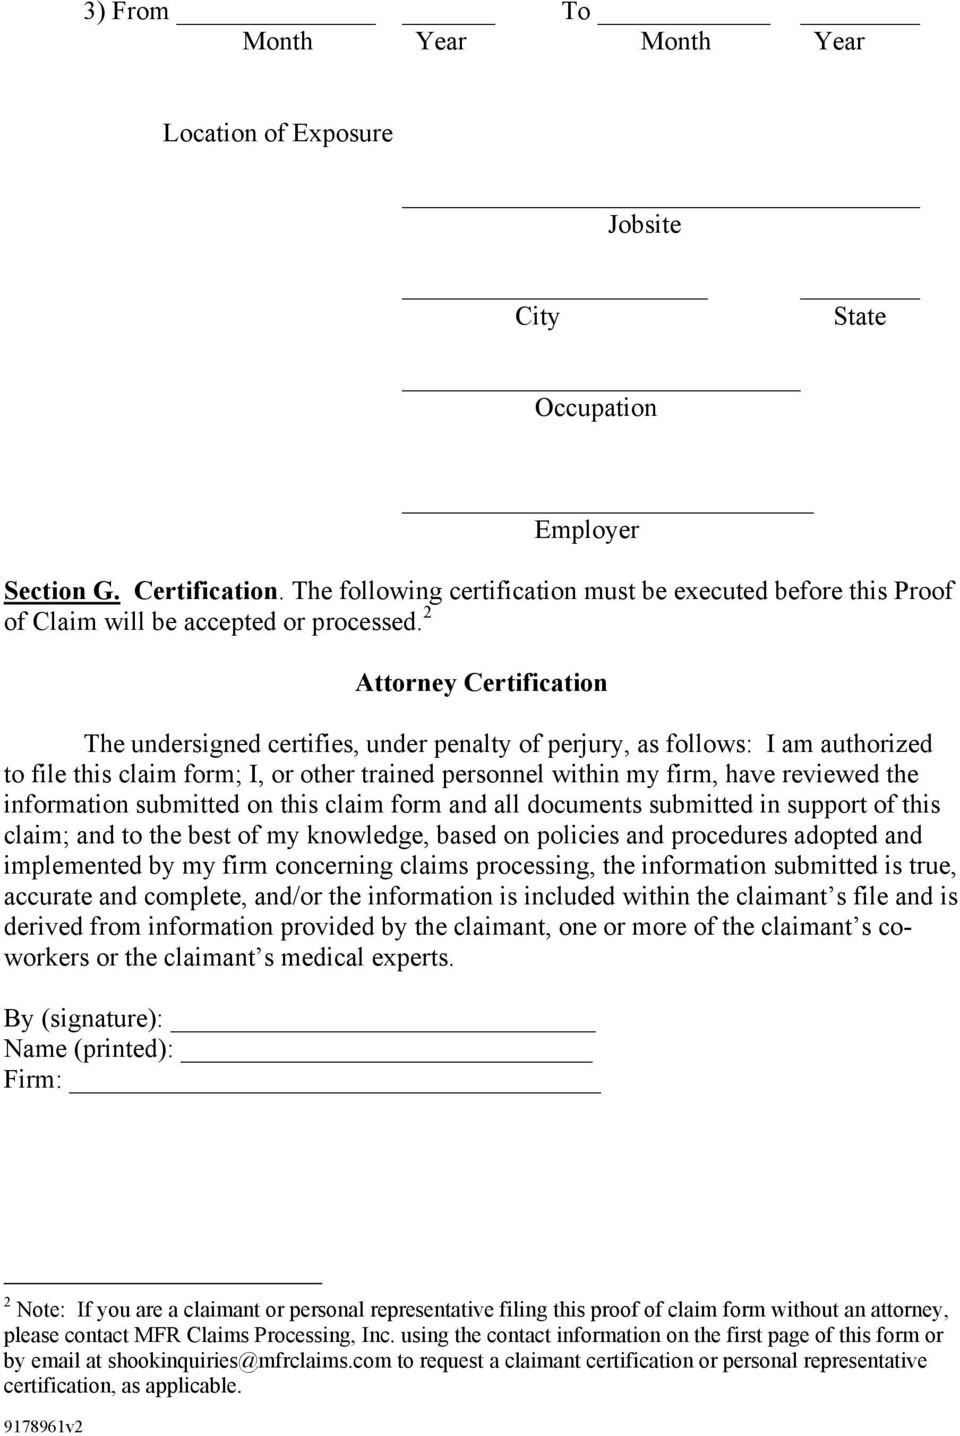 2 Attorney Certification The undersigned certifies, under penalty of perjury, as follows: I am authorized to file this claim form; I, or other trained personnel within my firm, have reviewed the